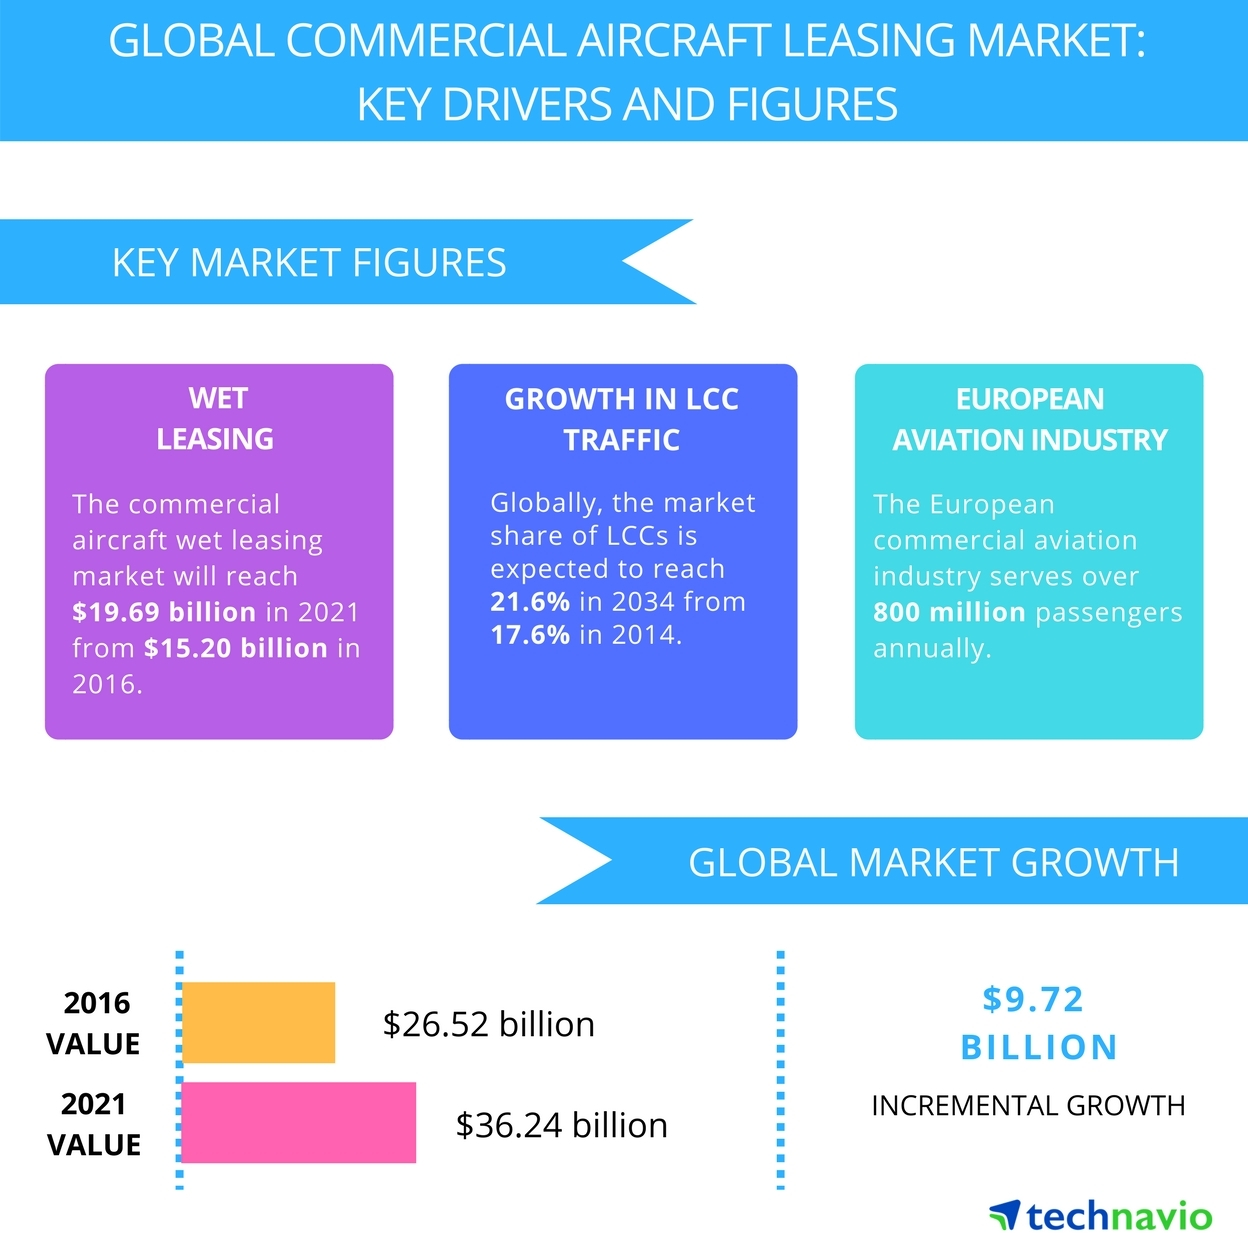 Top 5 Vendors In The Global Commercial Aircraft Leasing Market From